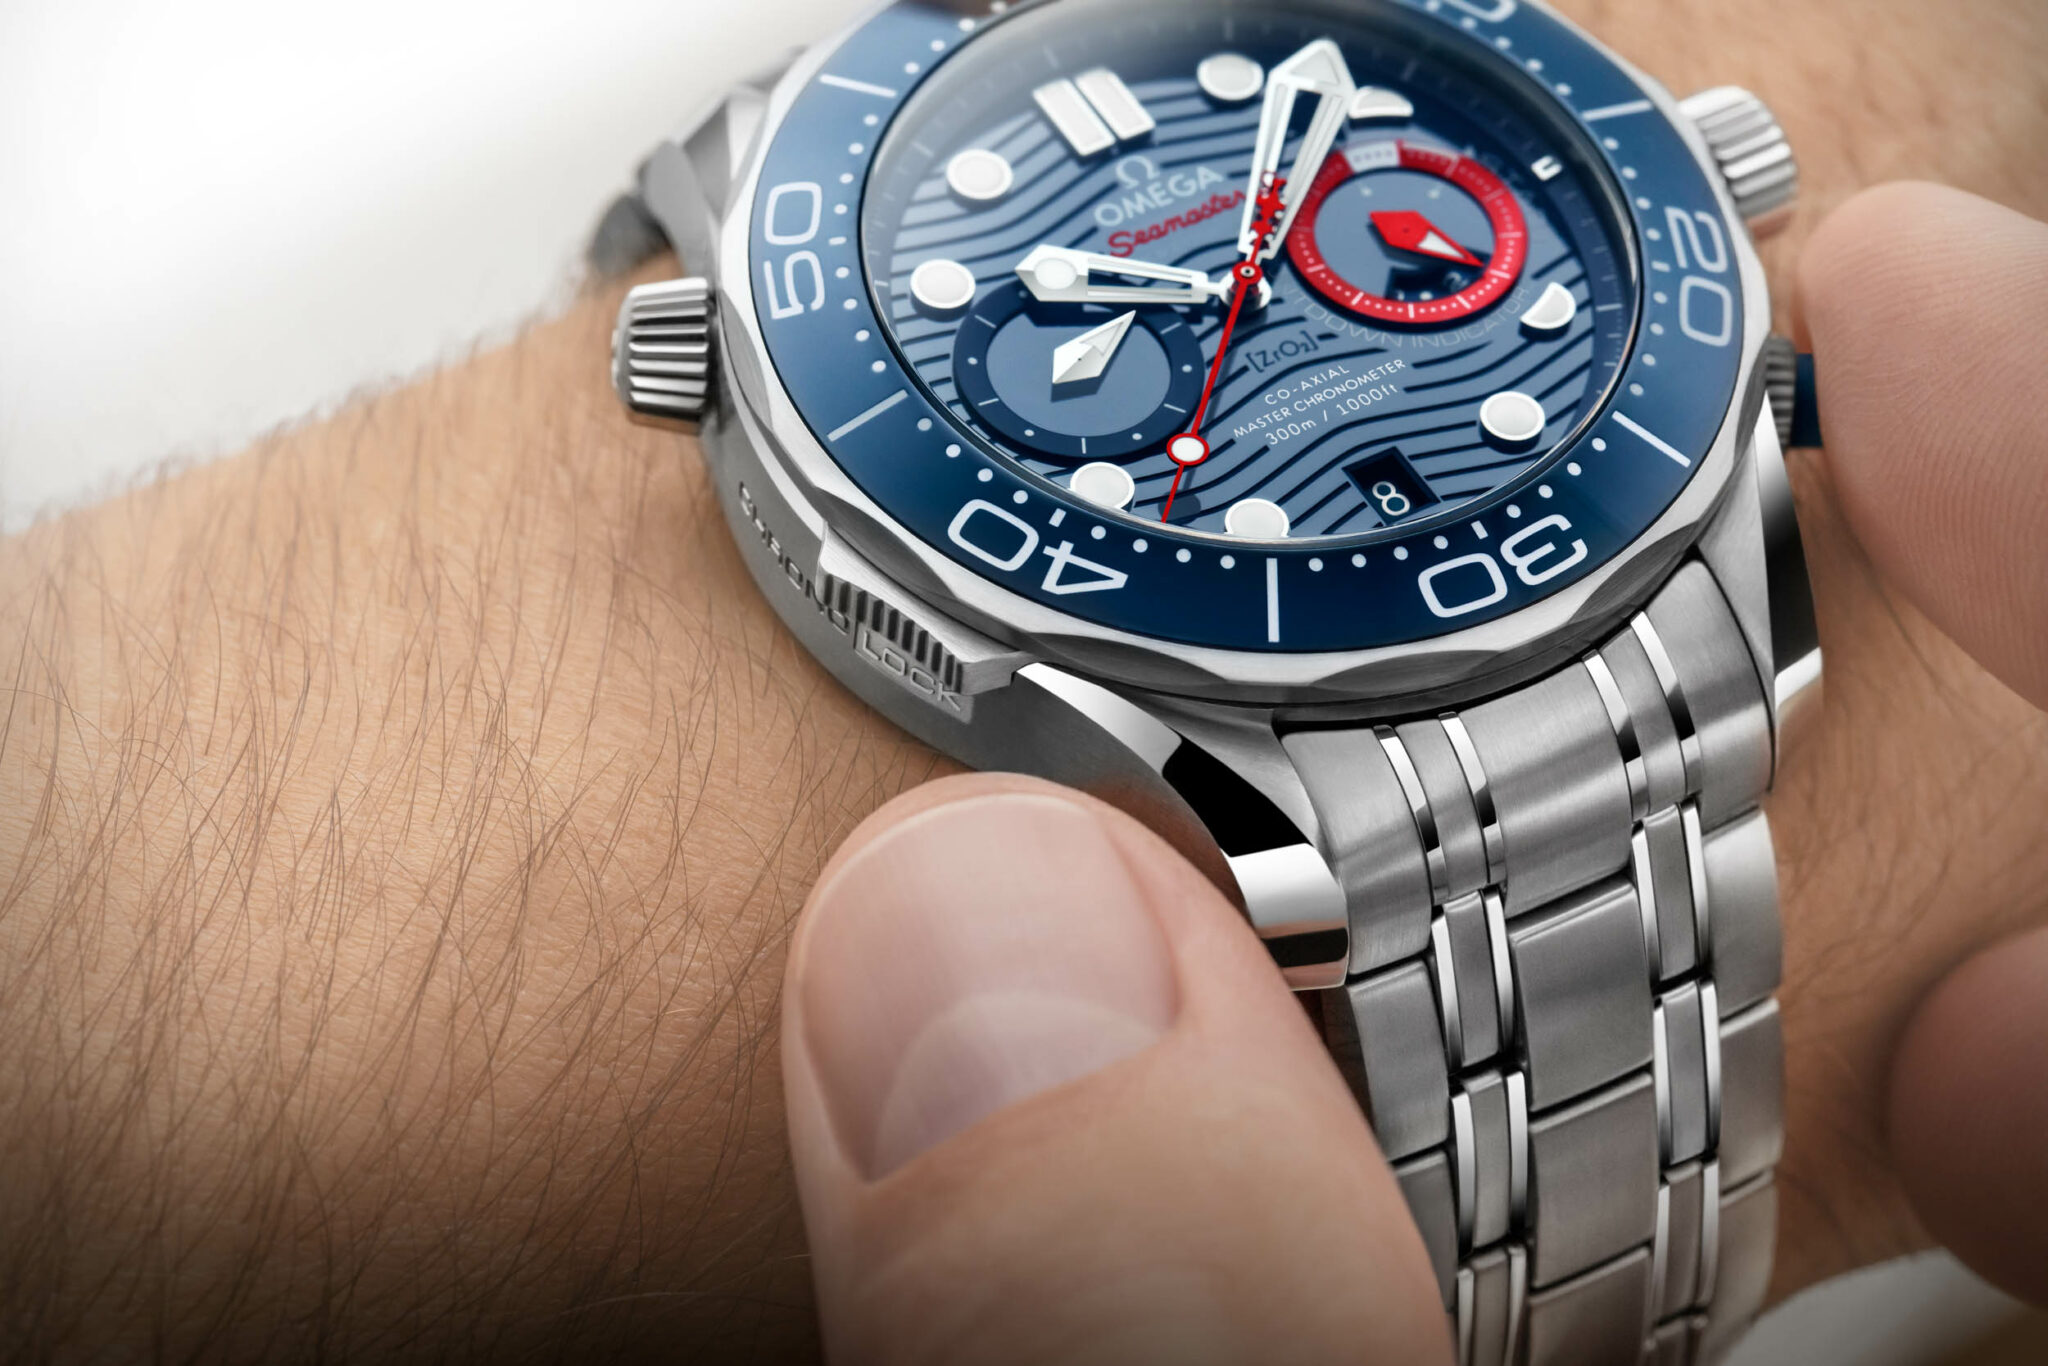 210.30.44.51.03.002_Seamaster-Diver-300M-Americas-Cup-Chronograph_image1_Landscape-2048x1366.jpg